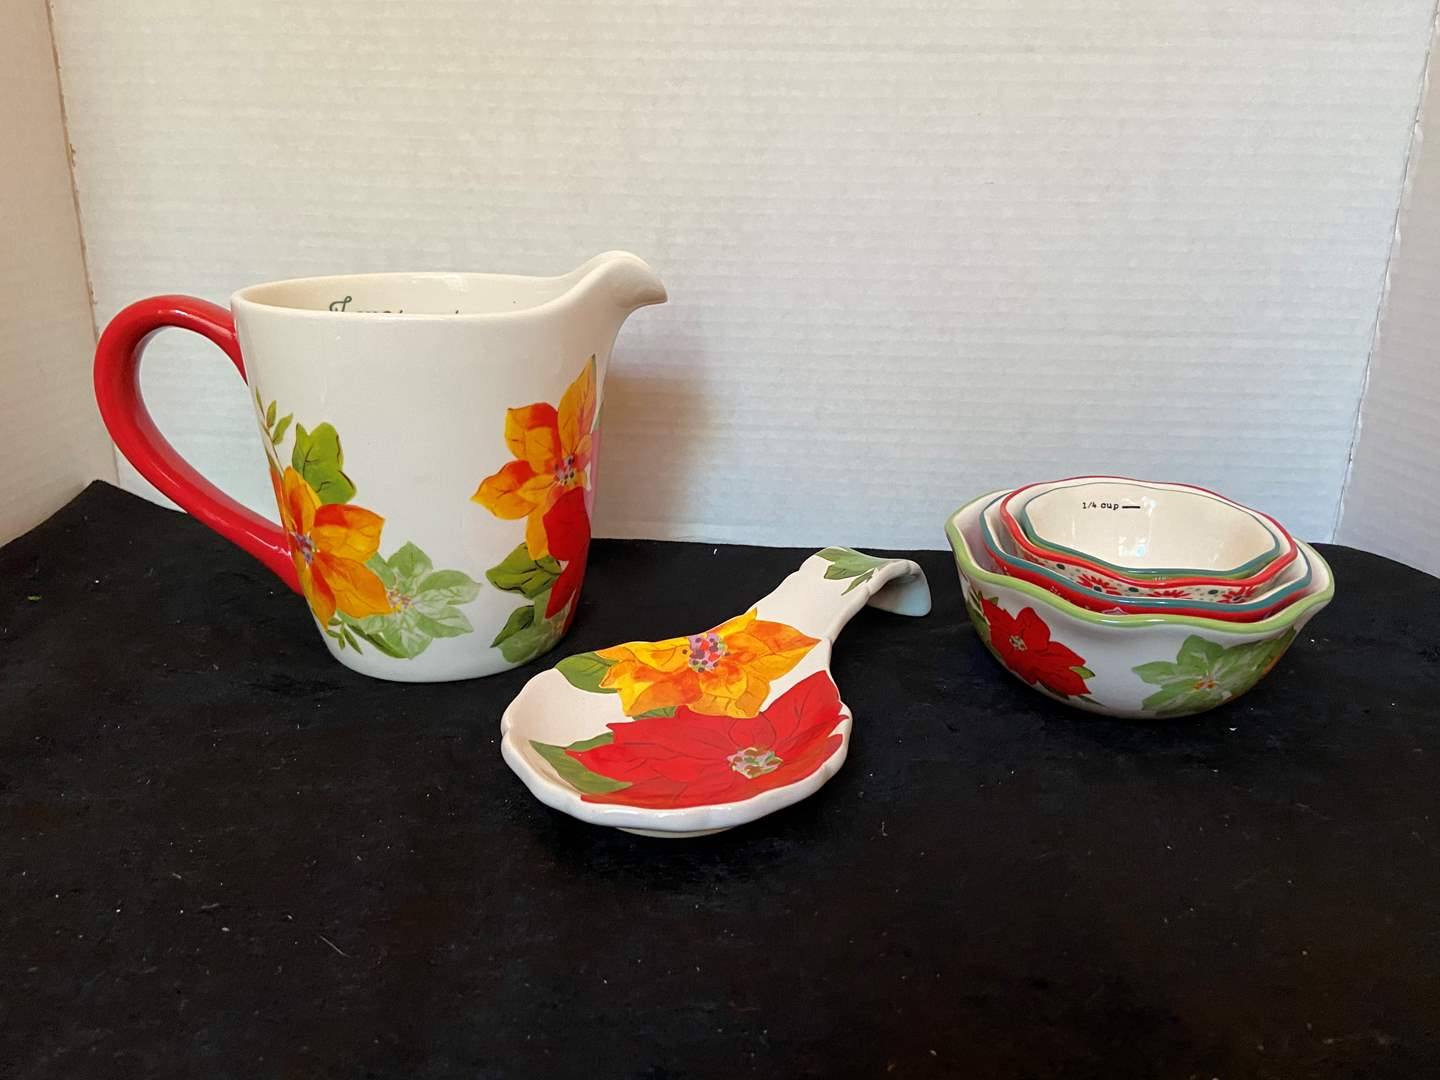 Lot # 323 Pioneer Woman Large Measuring Cup, Measuring cups & Spatula Holder